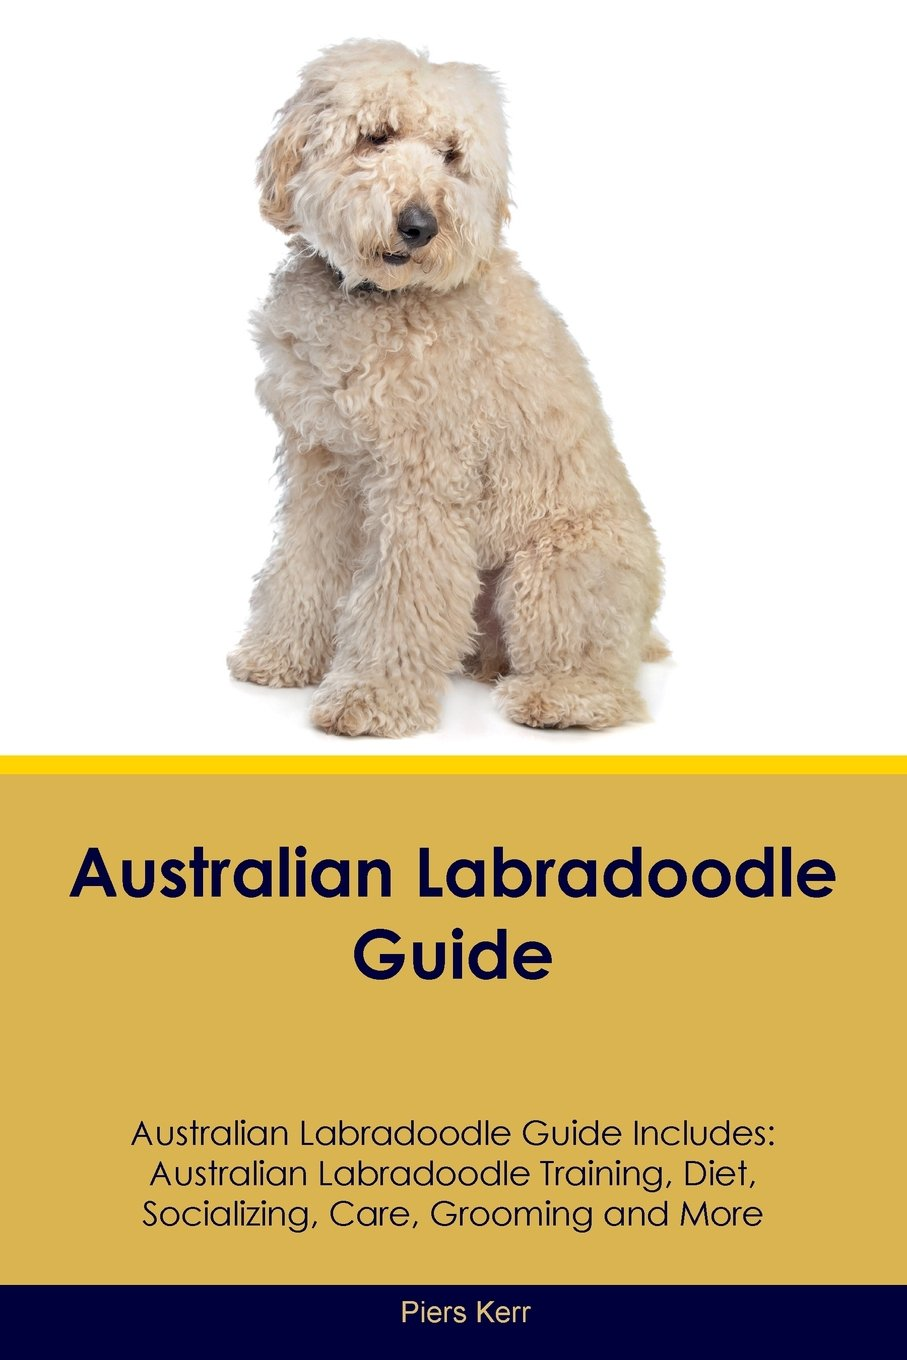 Australian Labradoodle Guide Australian Labradoodle Guide Includes: Australian Labradoodle Training, Diet, Socializing, Care, Grooming, Breeding and More